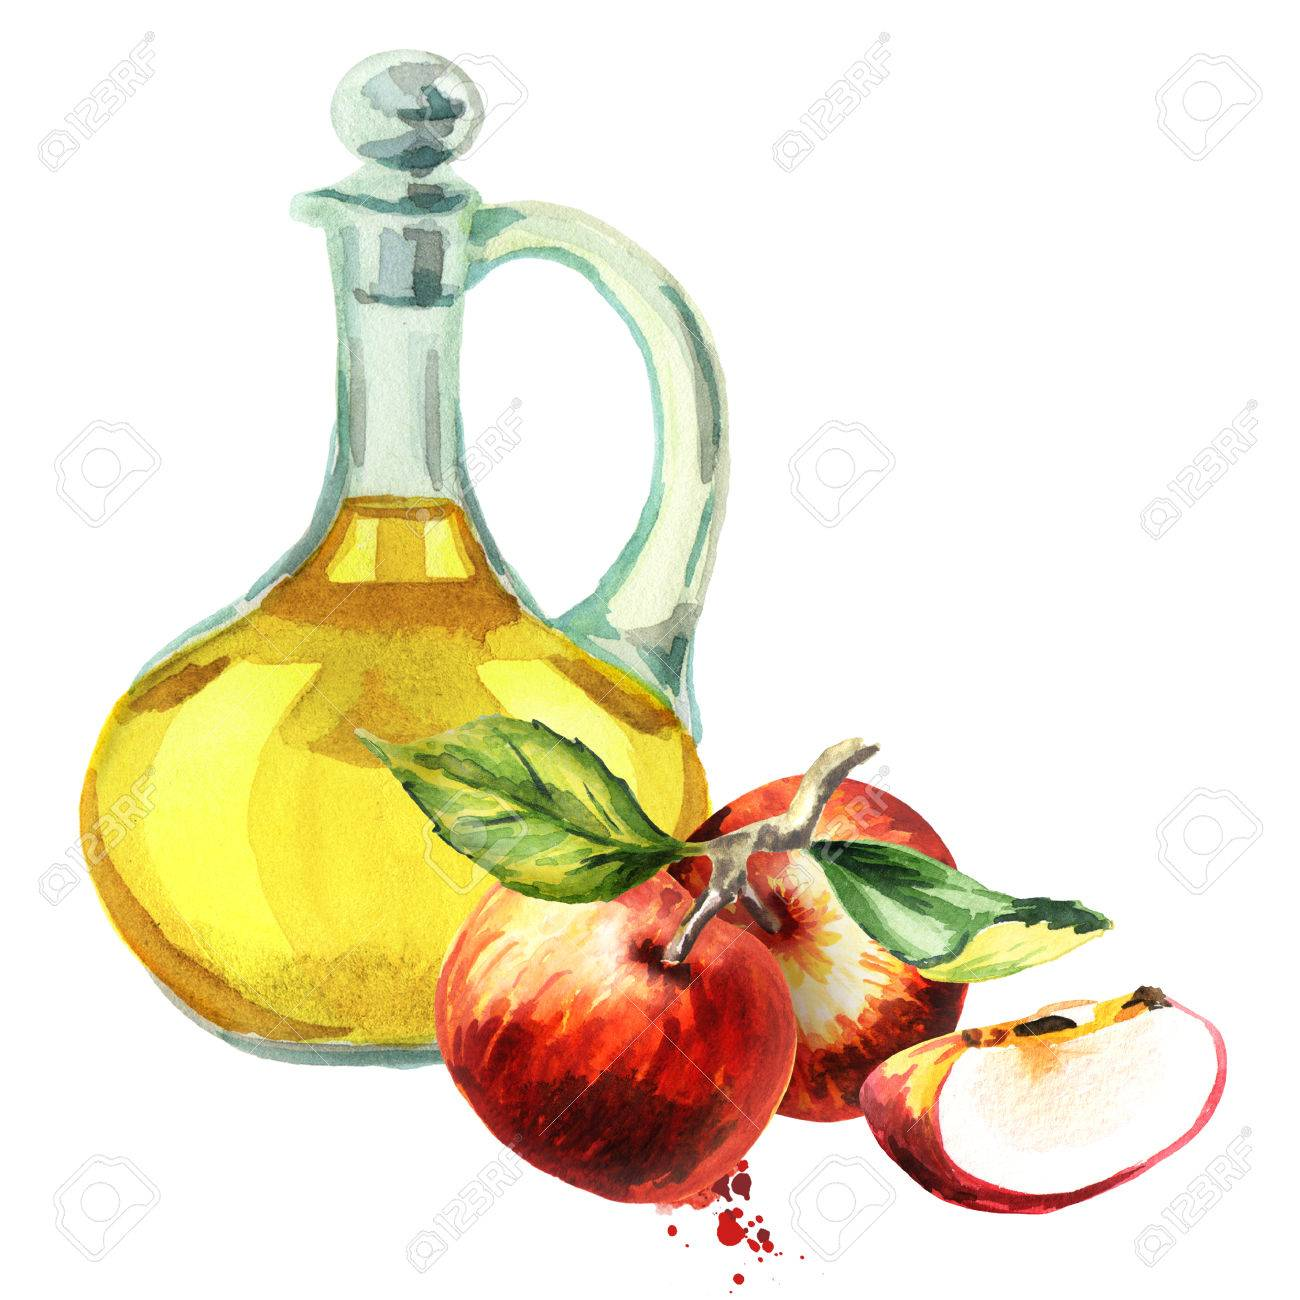 hight resolution of apple cider vinegar watercolor hand drawn illustration stock photo